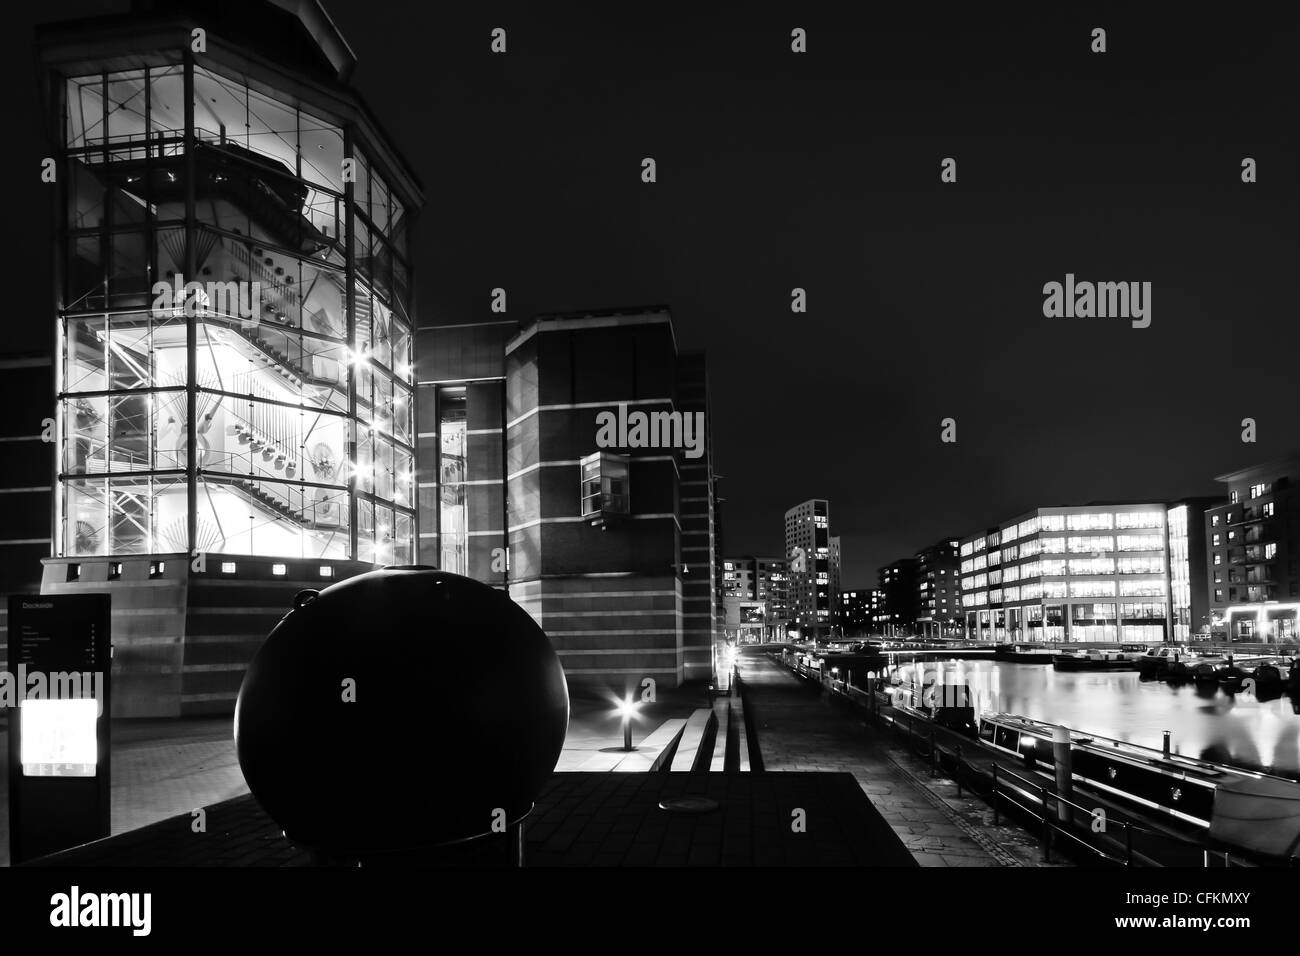 The Royal Armouries after dark, Clarence Dock in Leeds - Stock Image